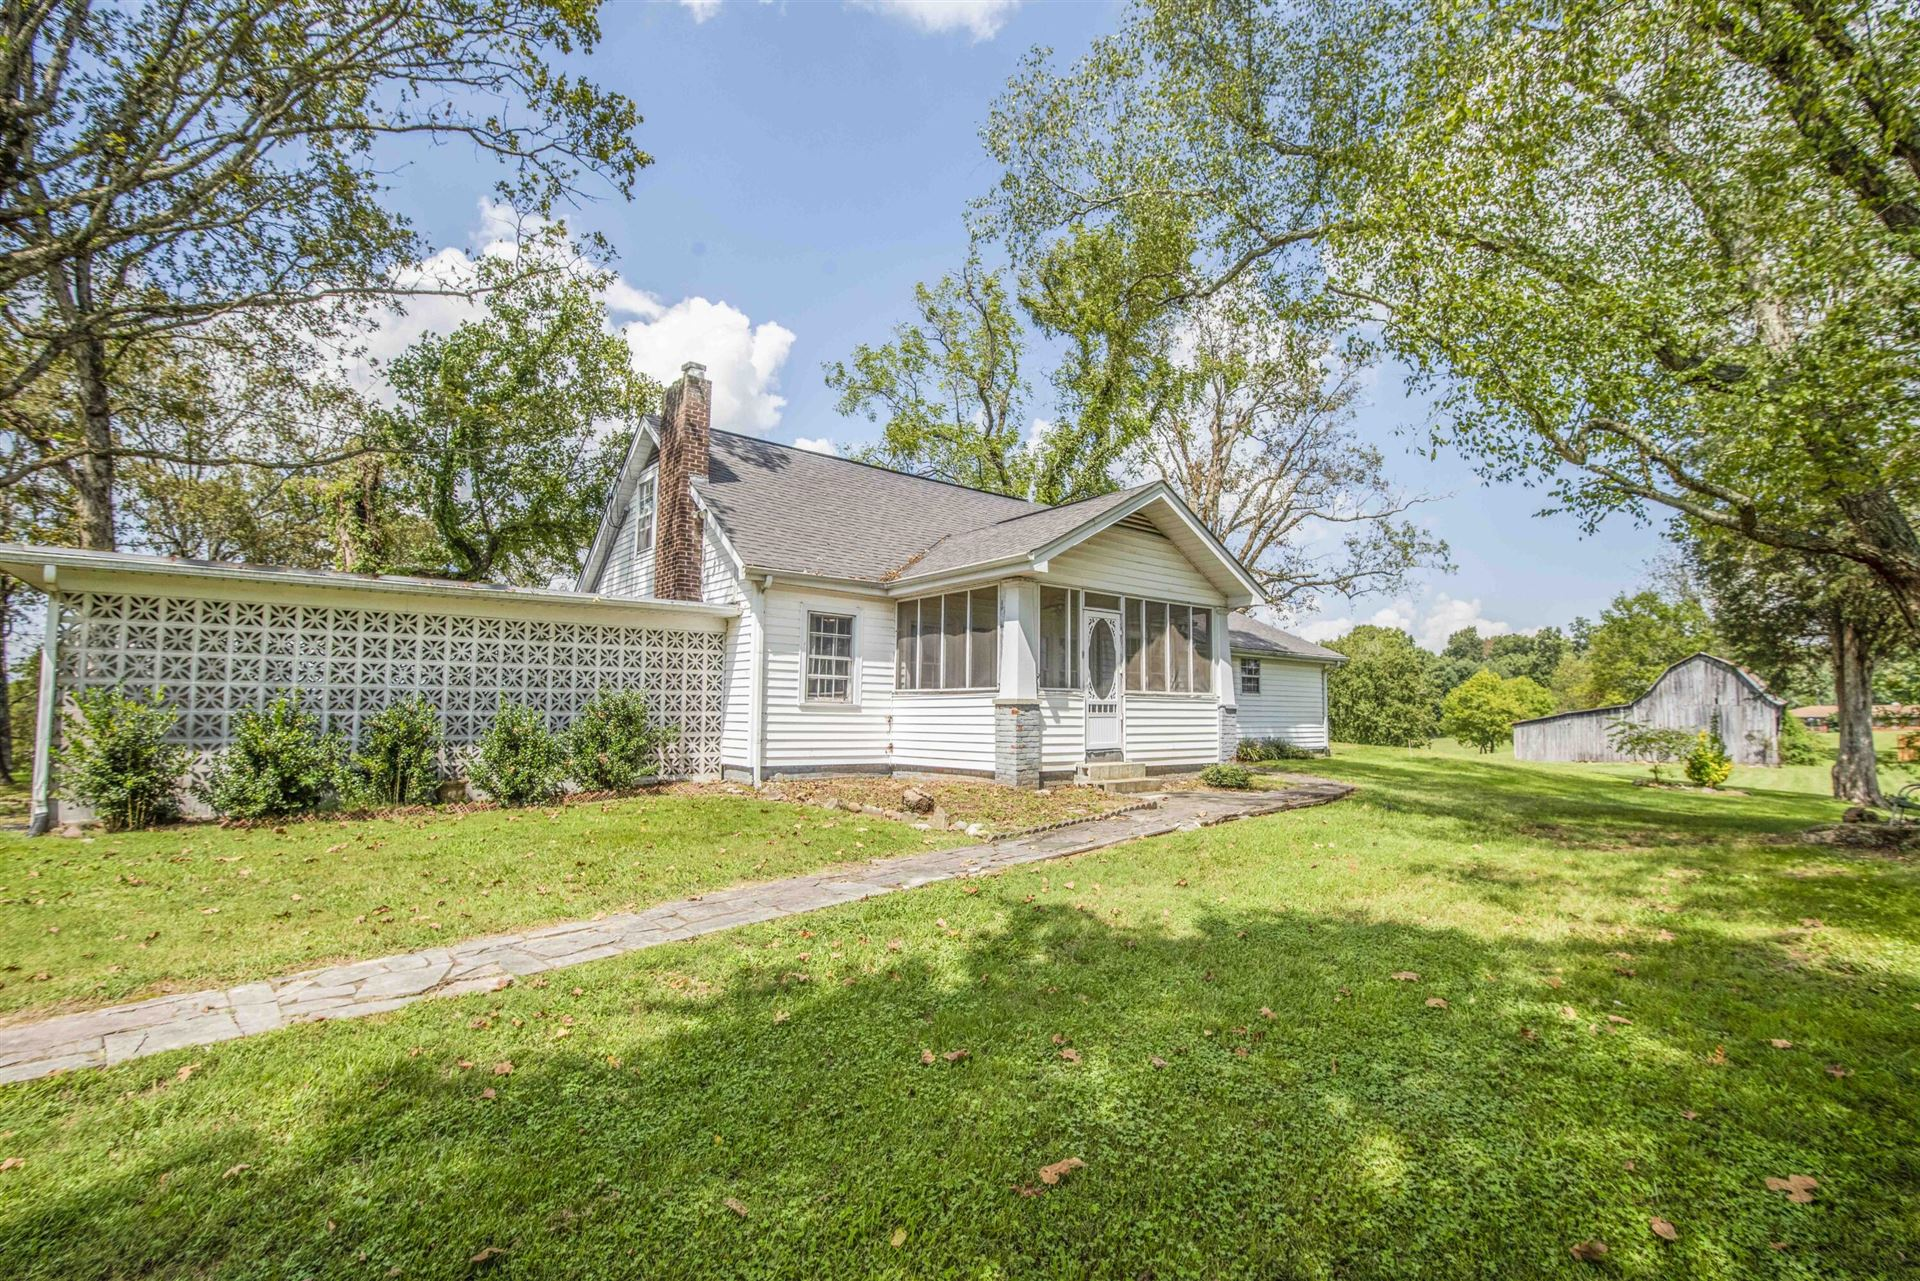 Photo of 248 Coulter Rd, Maryville, TN 37804 (MLS # 1168534)